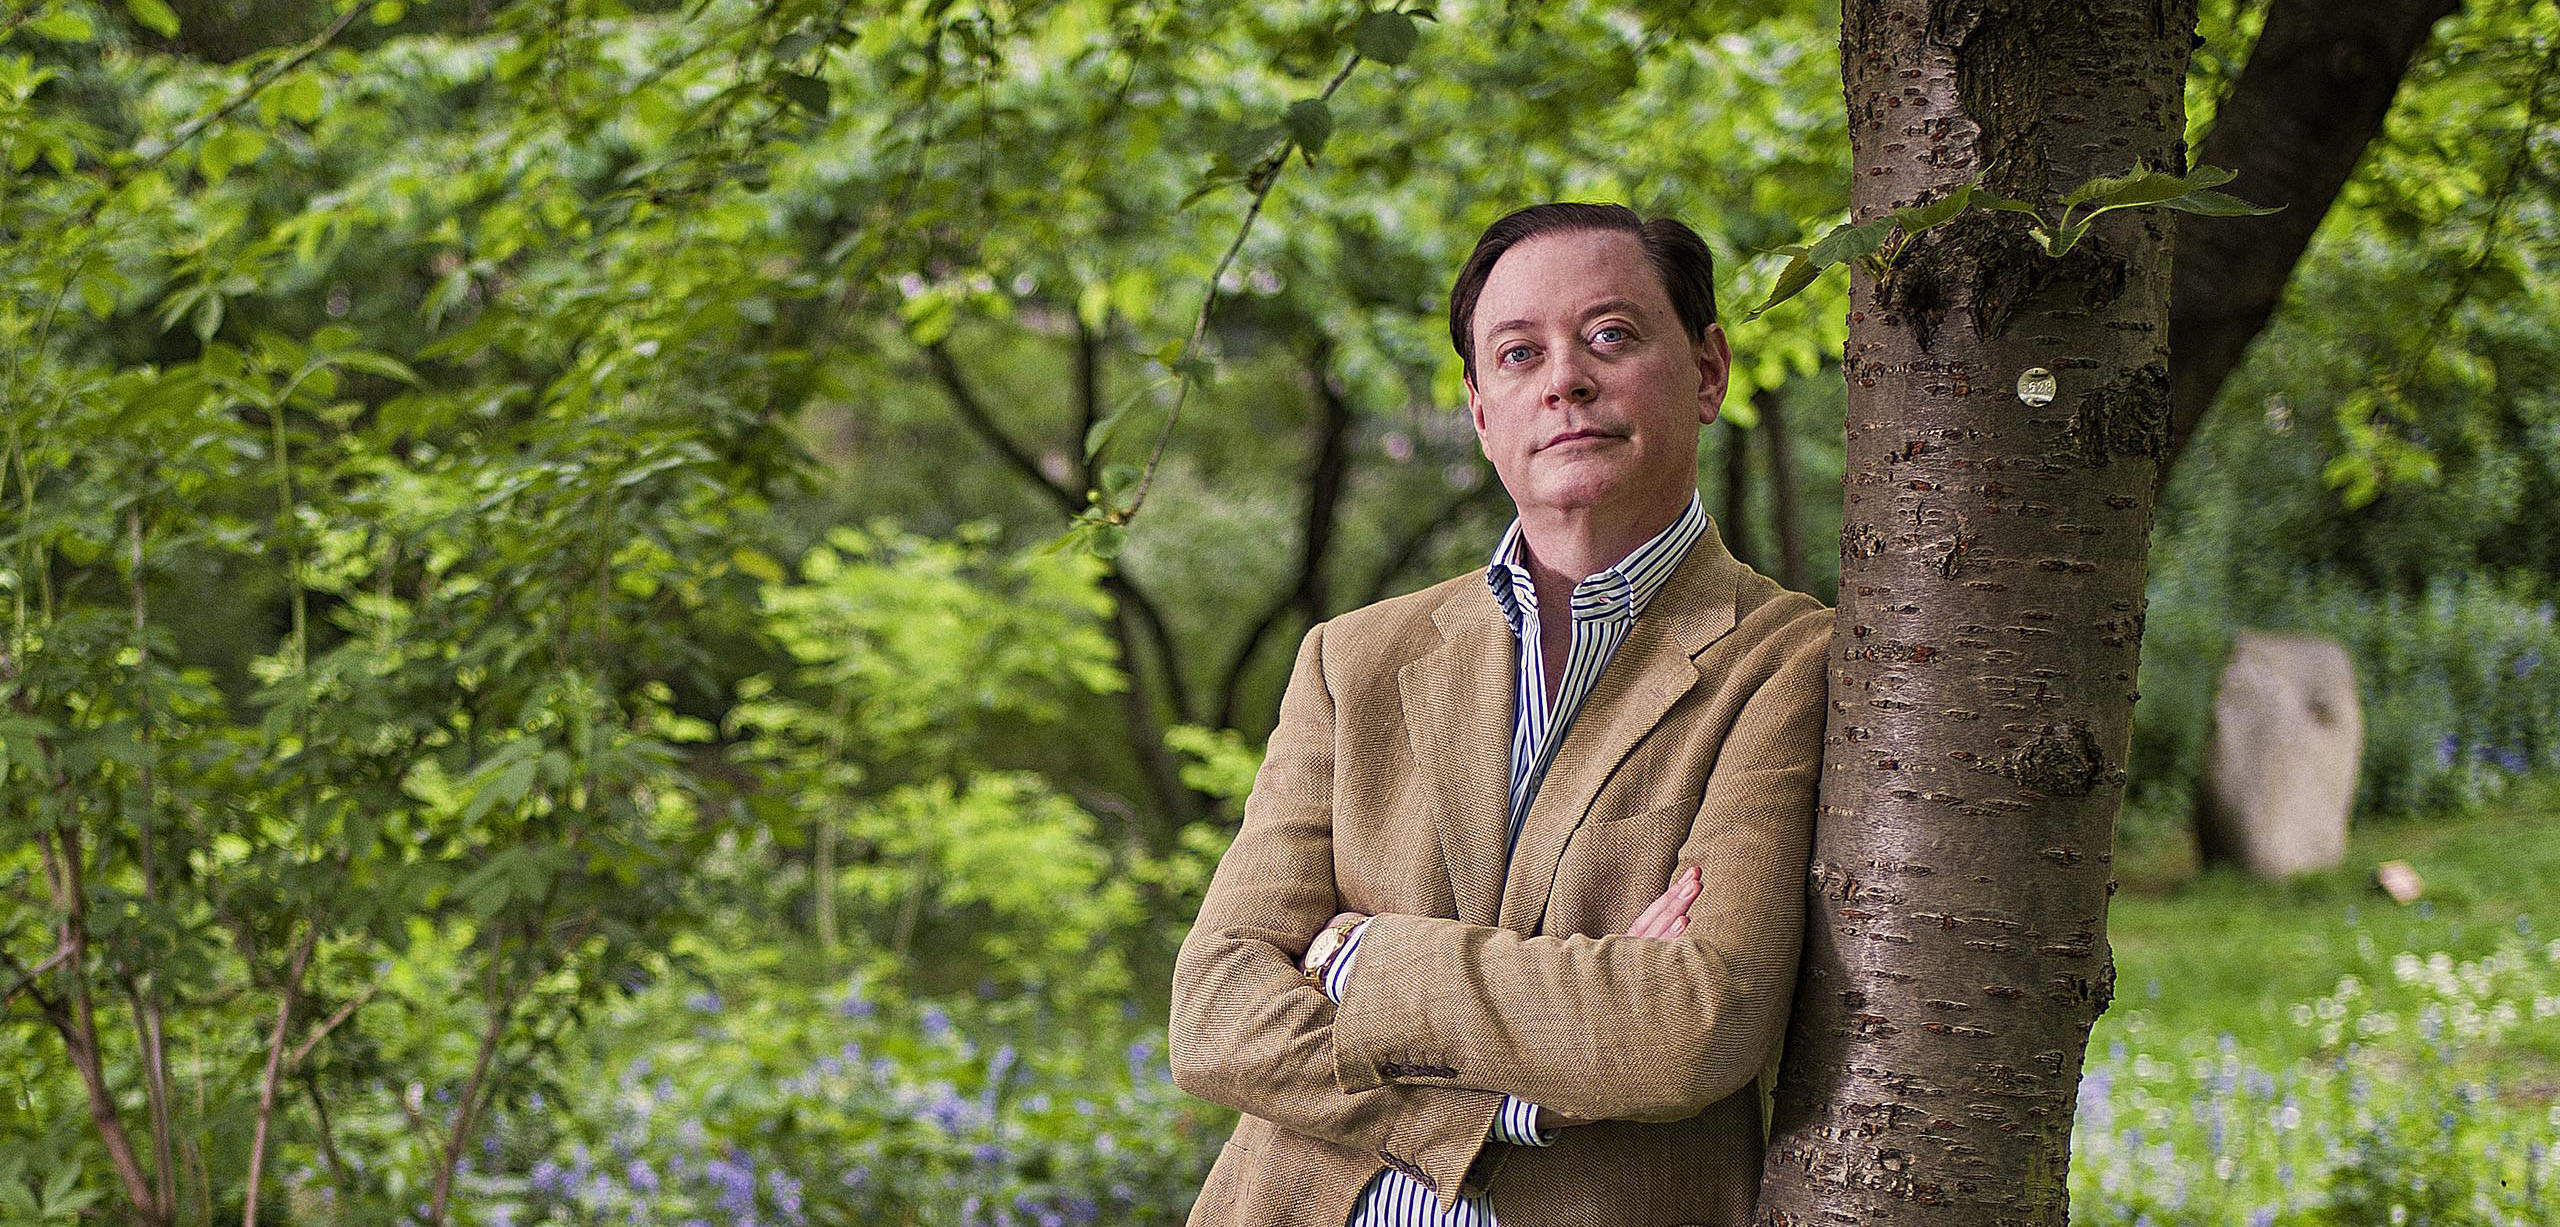 A proud citizen of anywhere: Andrew Solomon's quest to celebrate difference